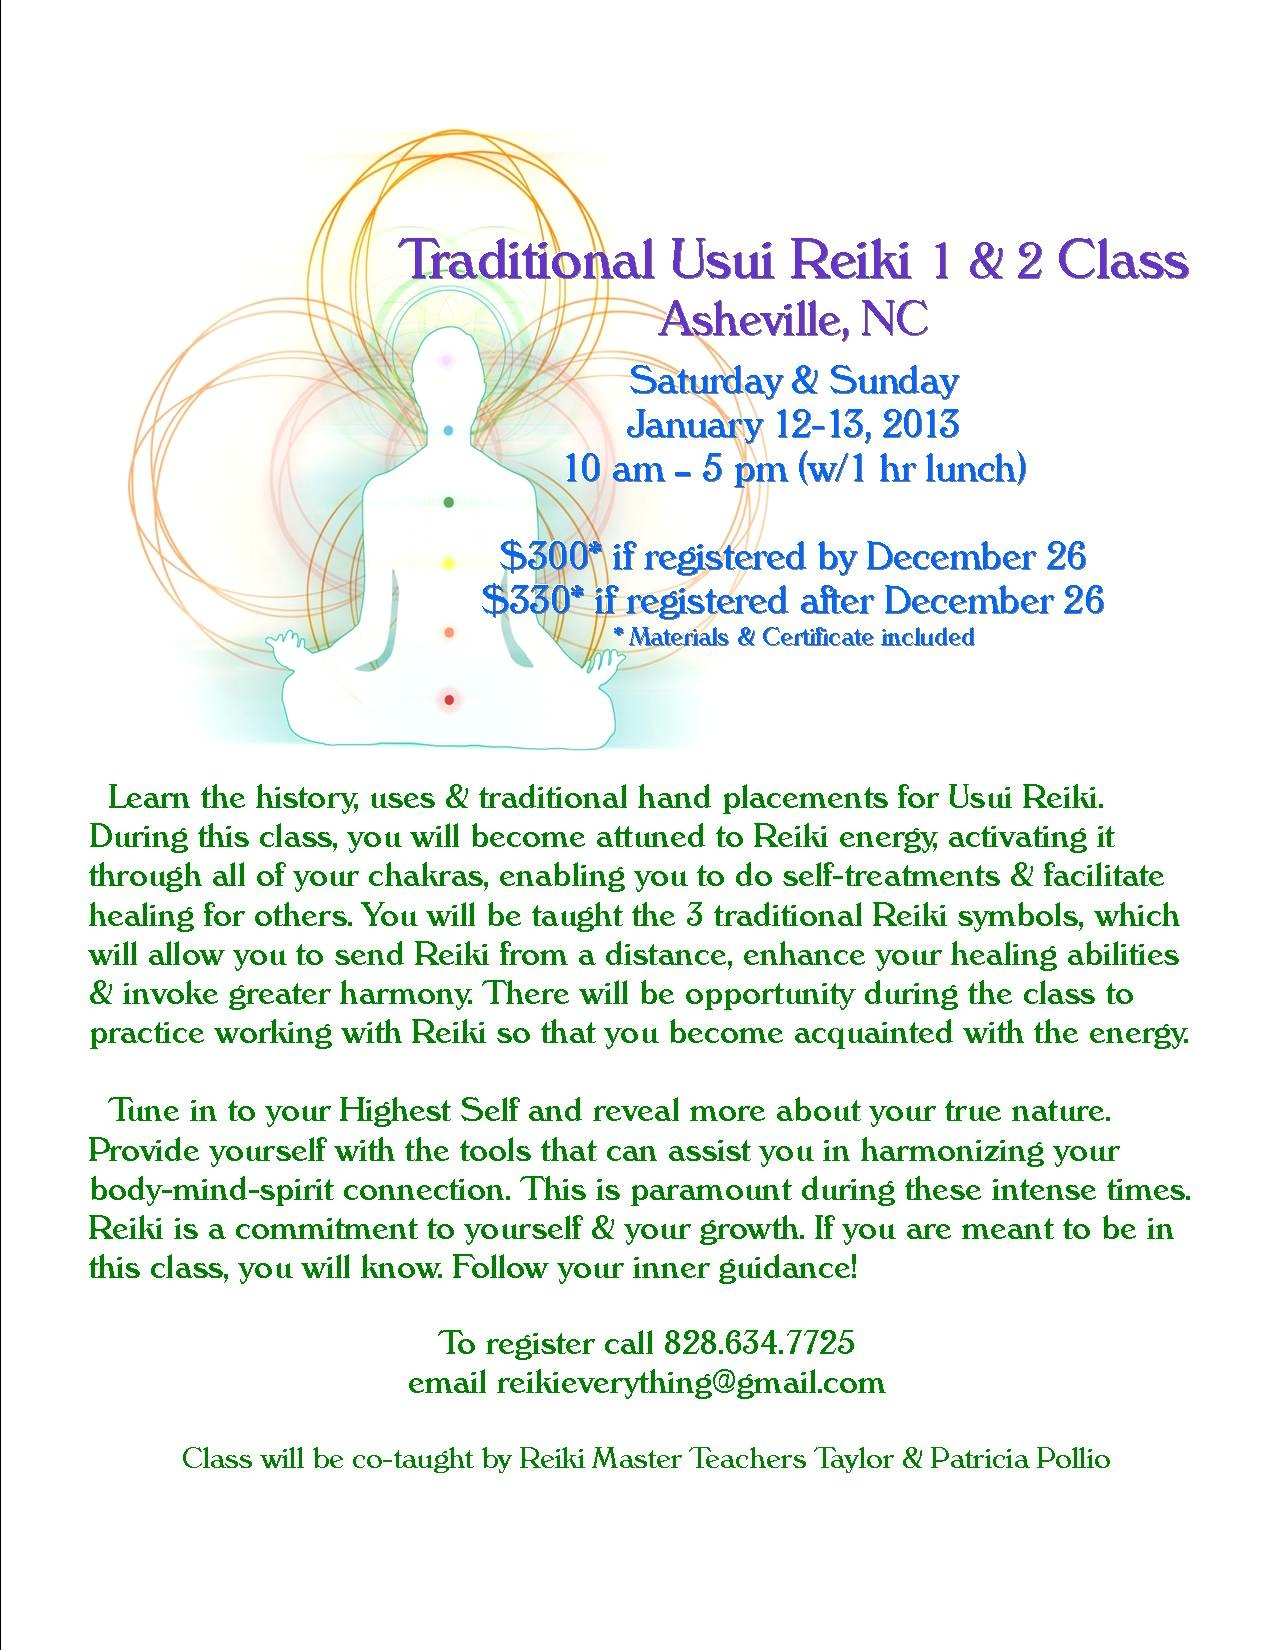 Traditional usui reiki 1 2 class asheville nc divine timing image biocorpaavc Image collections